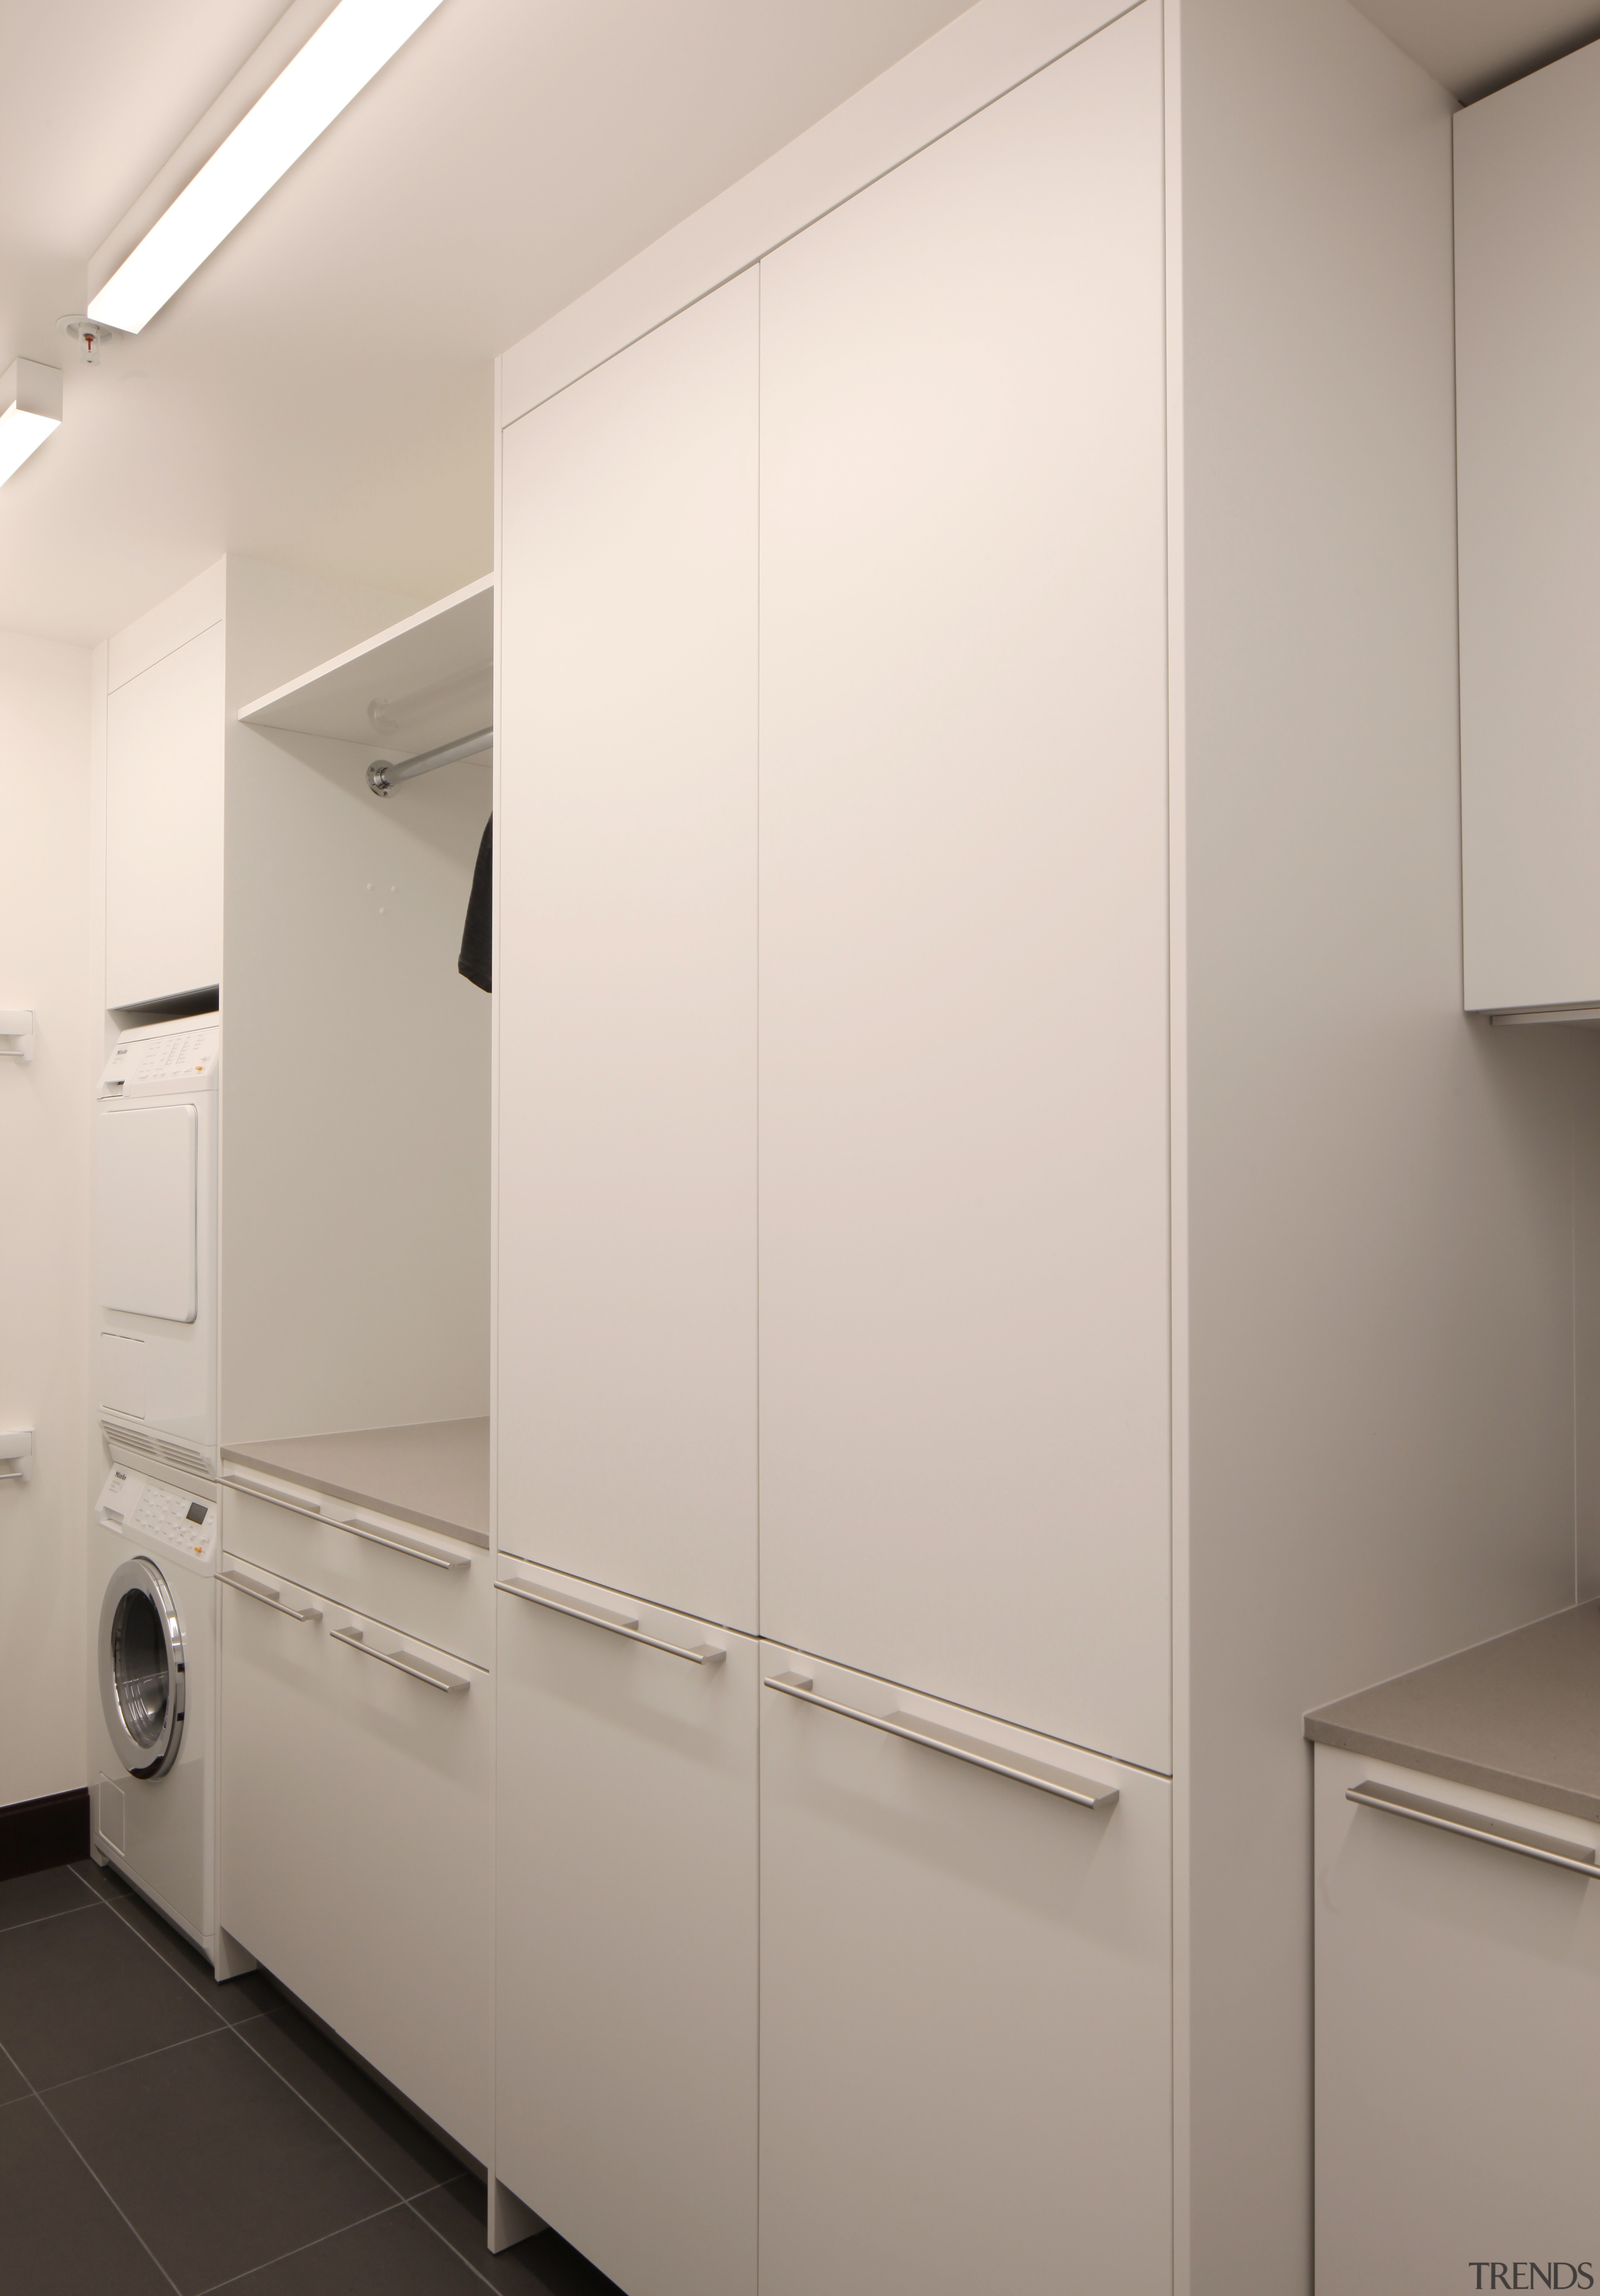 This scullery, part of an apartment kitchen by scullery, cabinetry, design, apartment kitchen,  William Landeros, Jed MacKenzie, washer/dryer, Kitchen Distributors